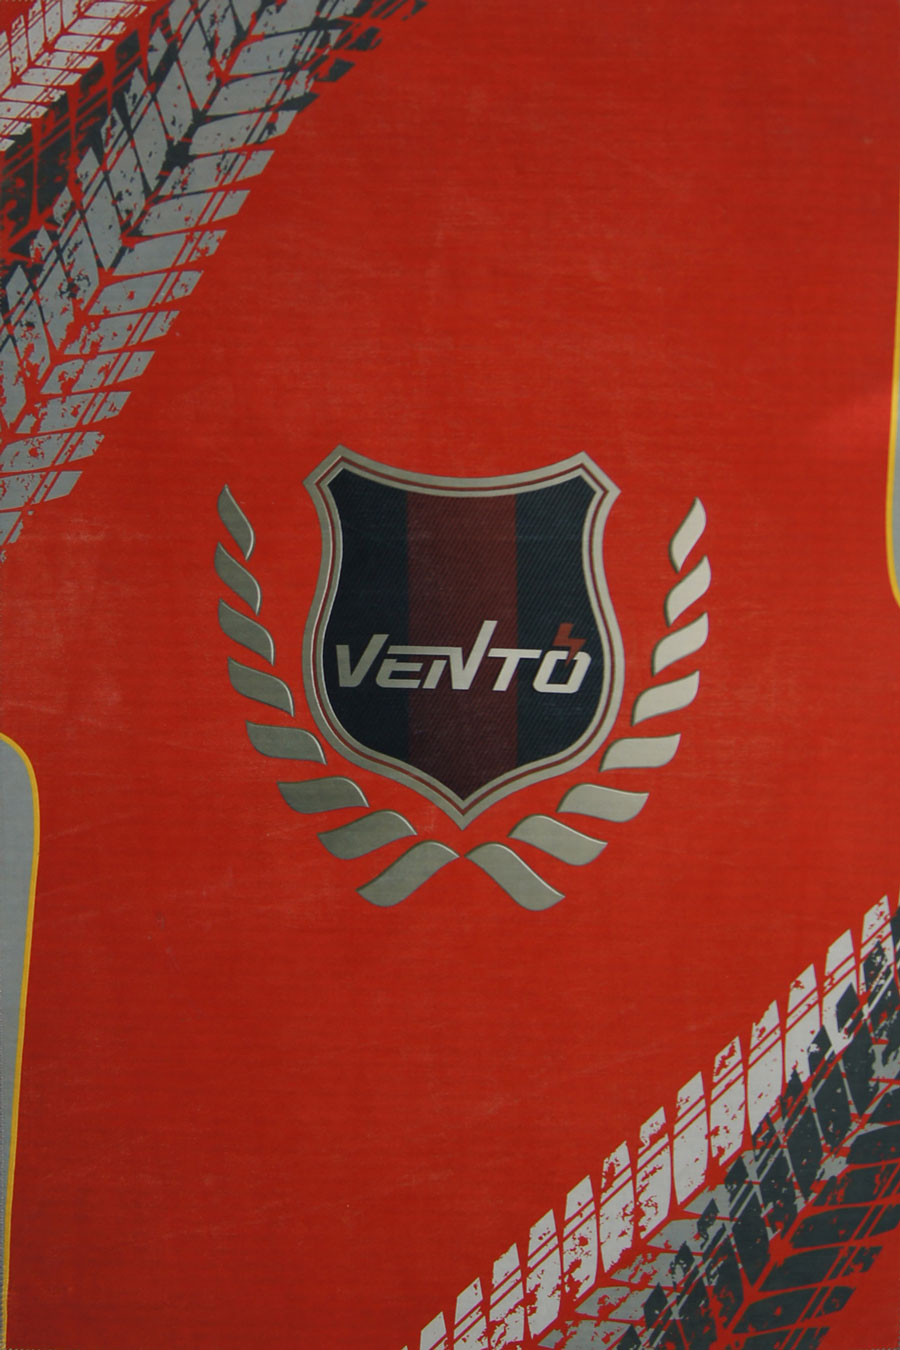 Vento V10 Red Young Carpet